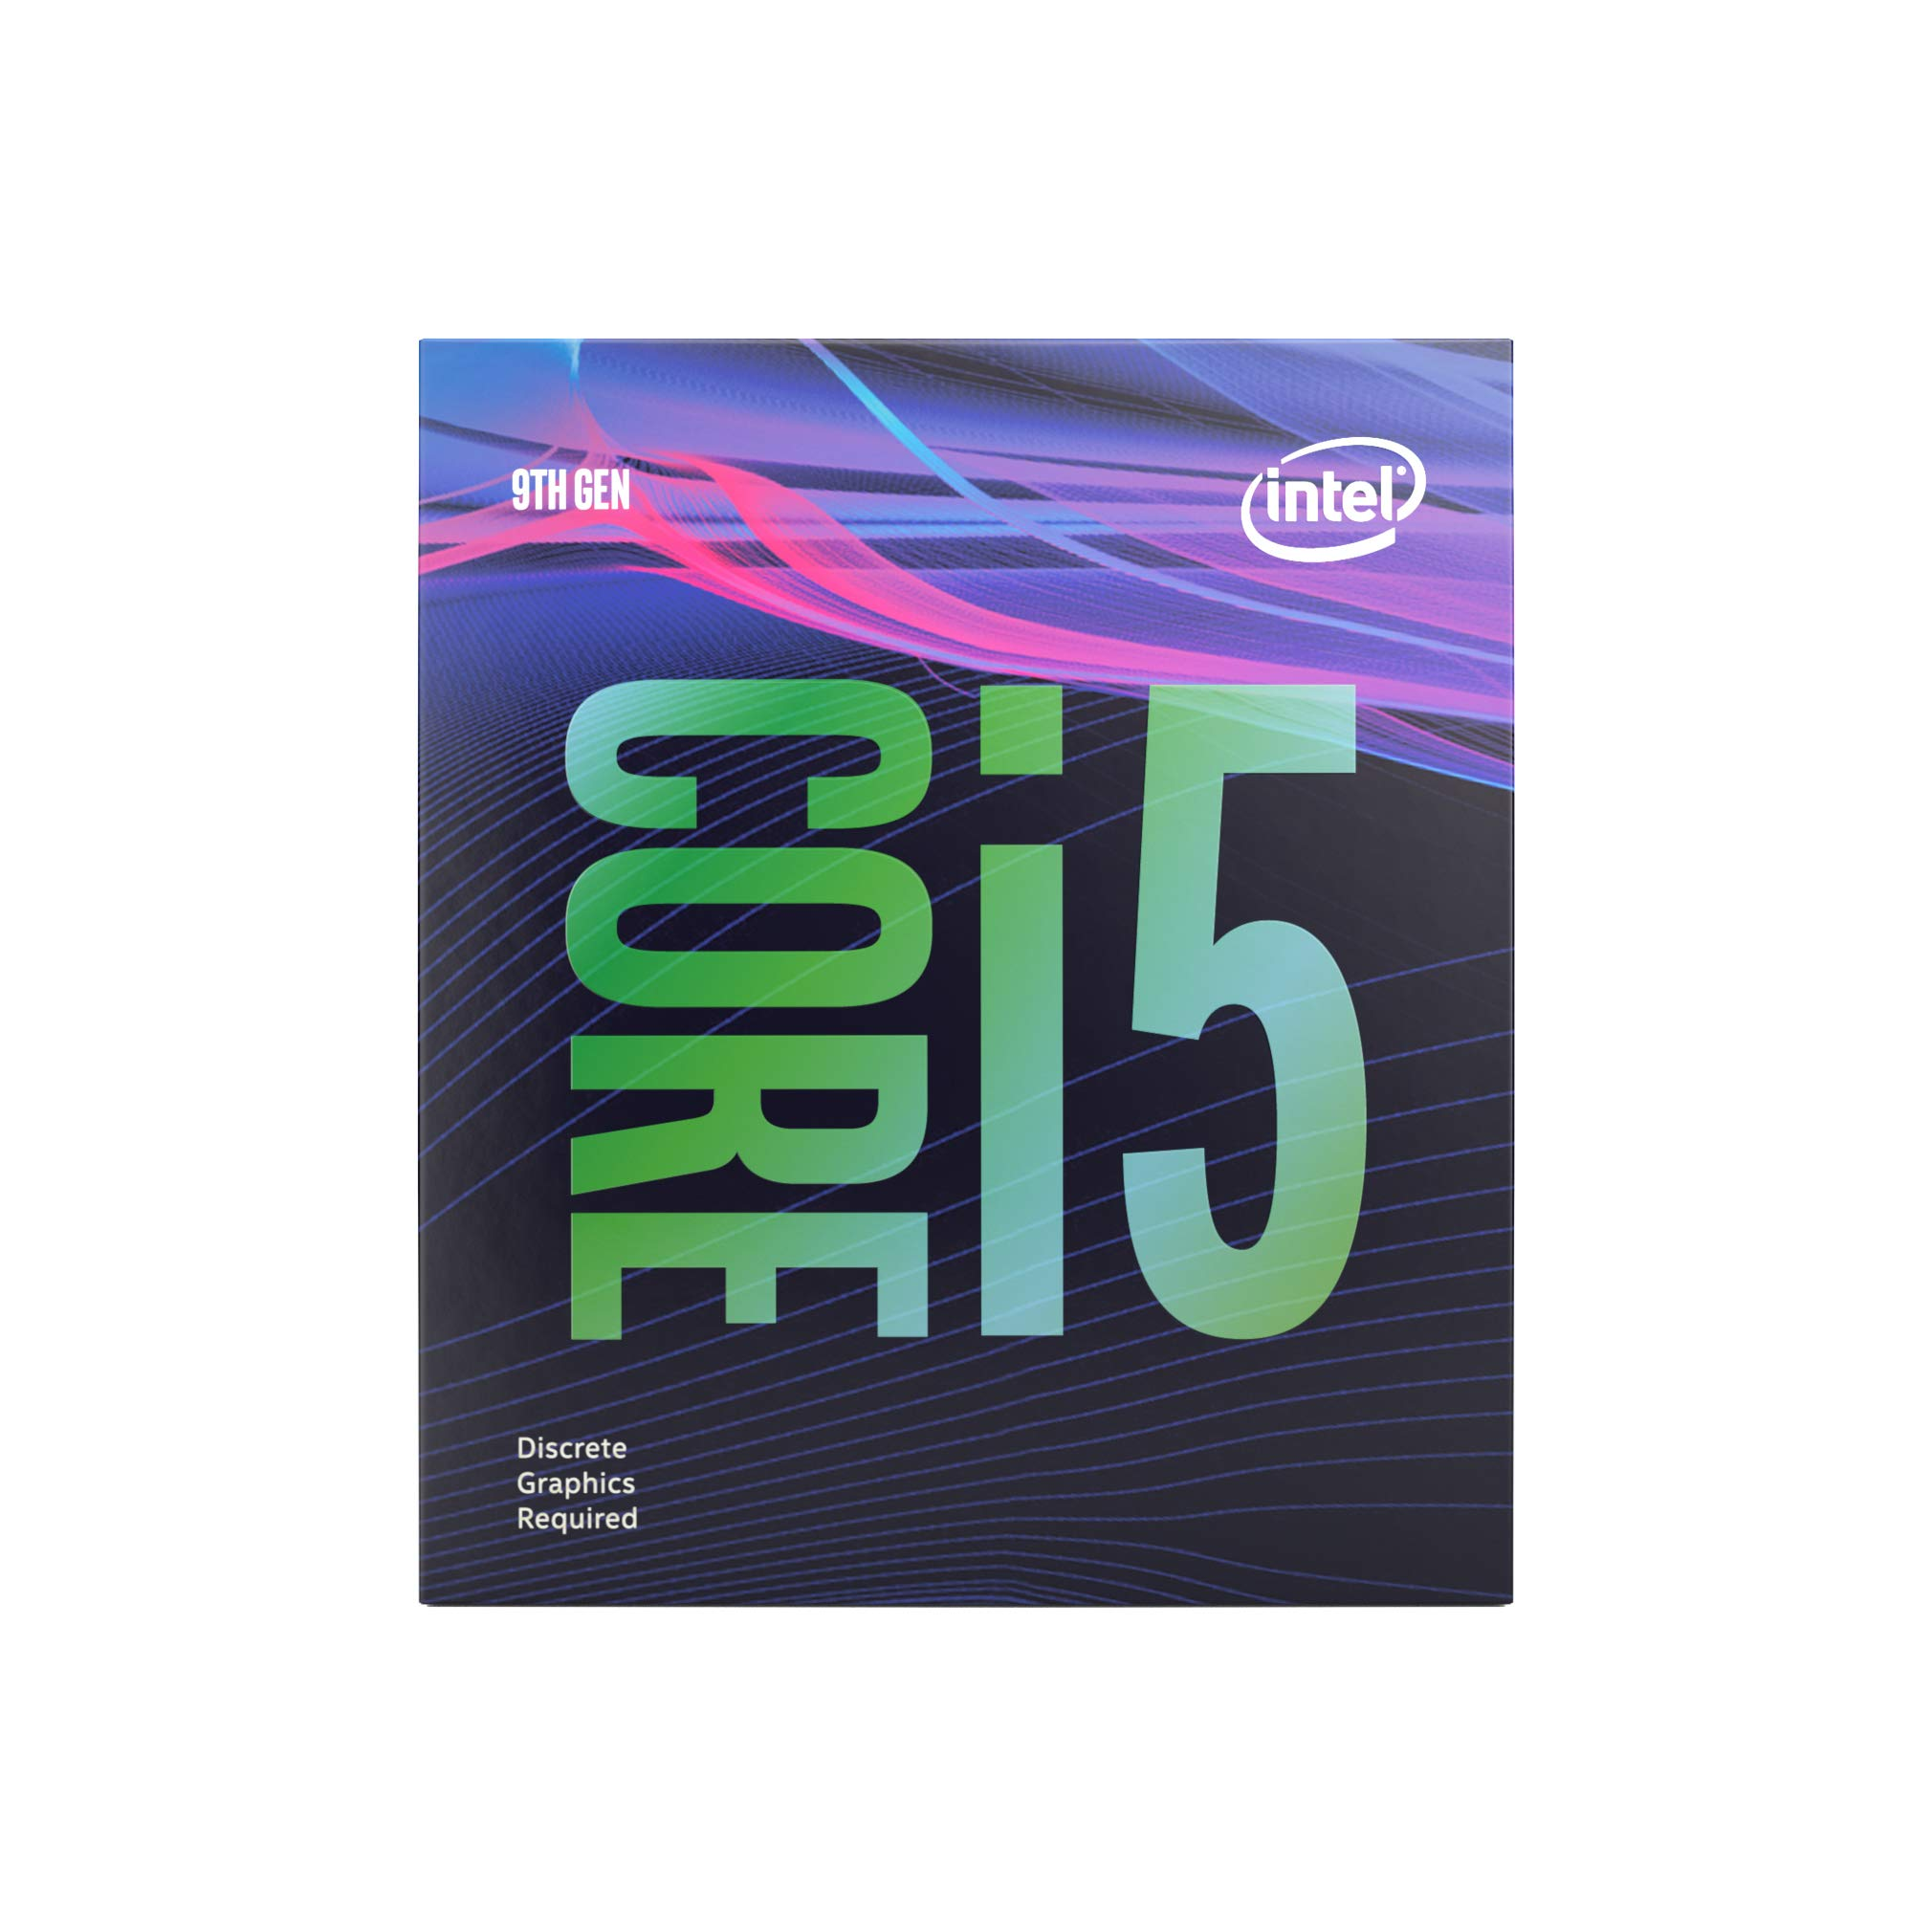 Intel Core I5-9400f 6 Cores 4.1 Ghz Turbo Without Graphics